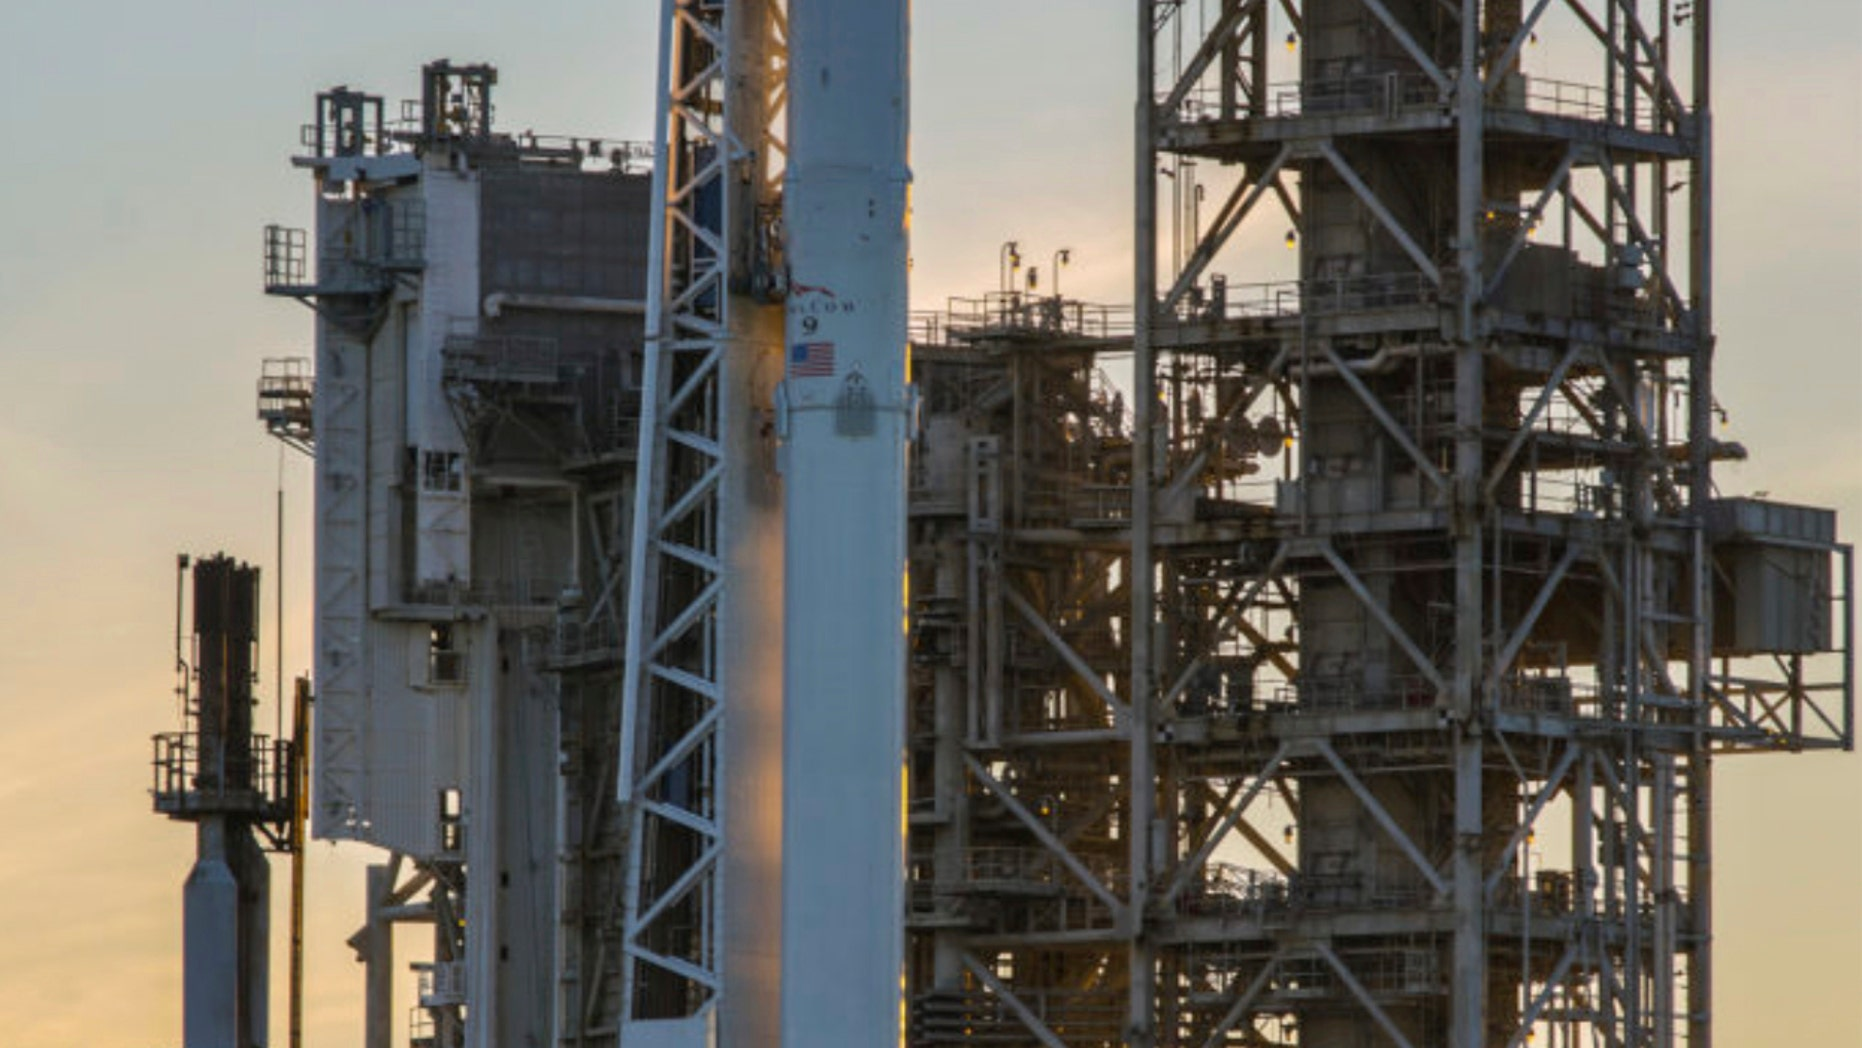 Space X Falcon9 rocket on launch pad 39A at the Kennedy Space Center Saturday.